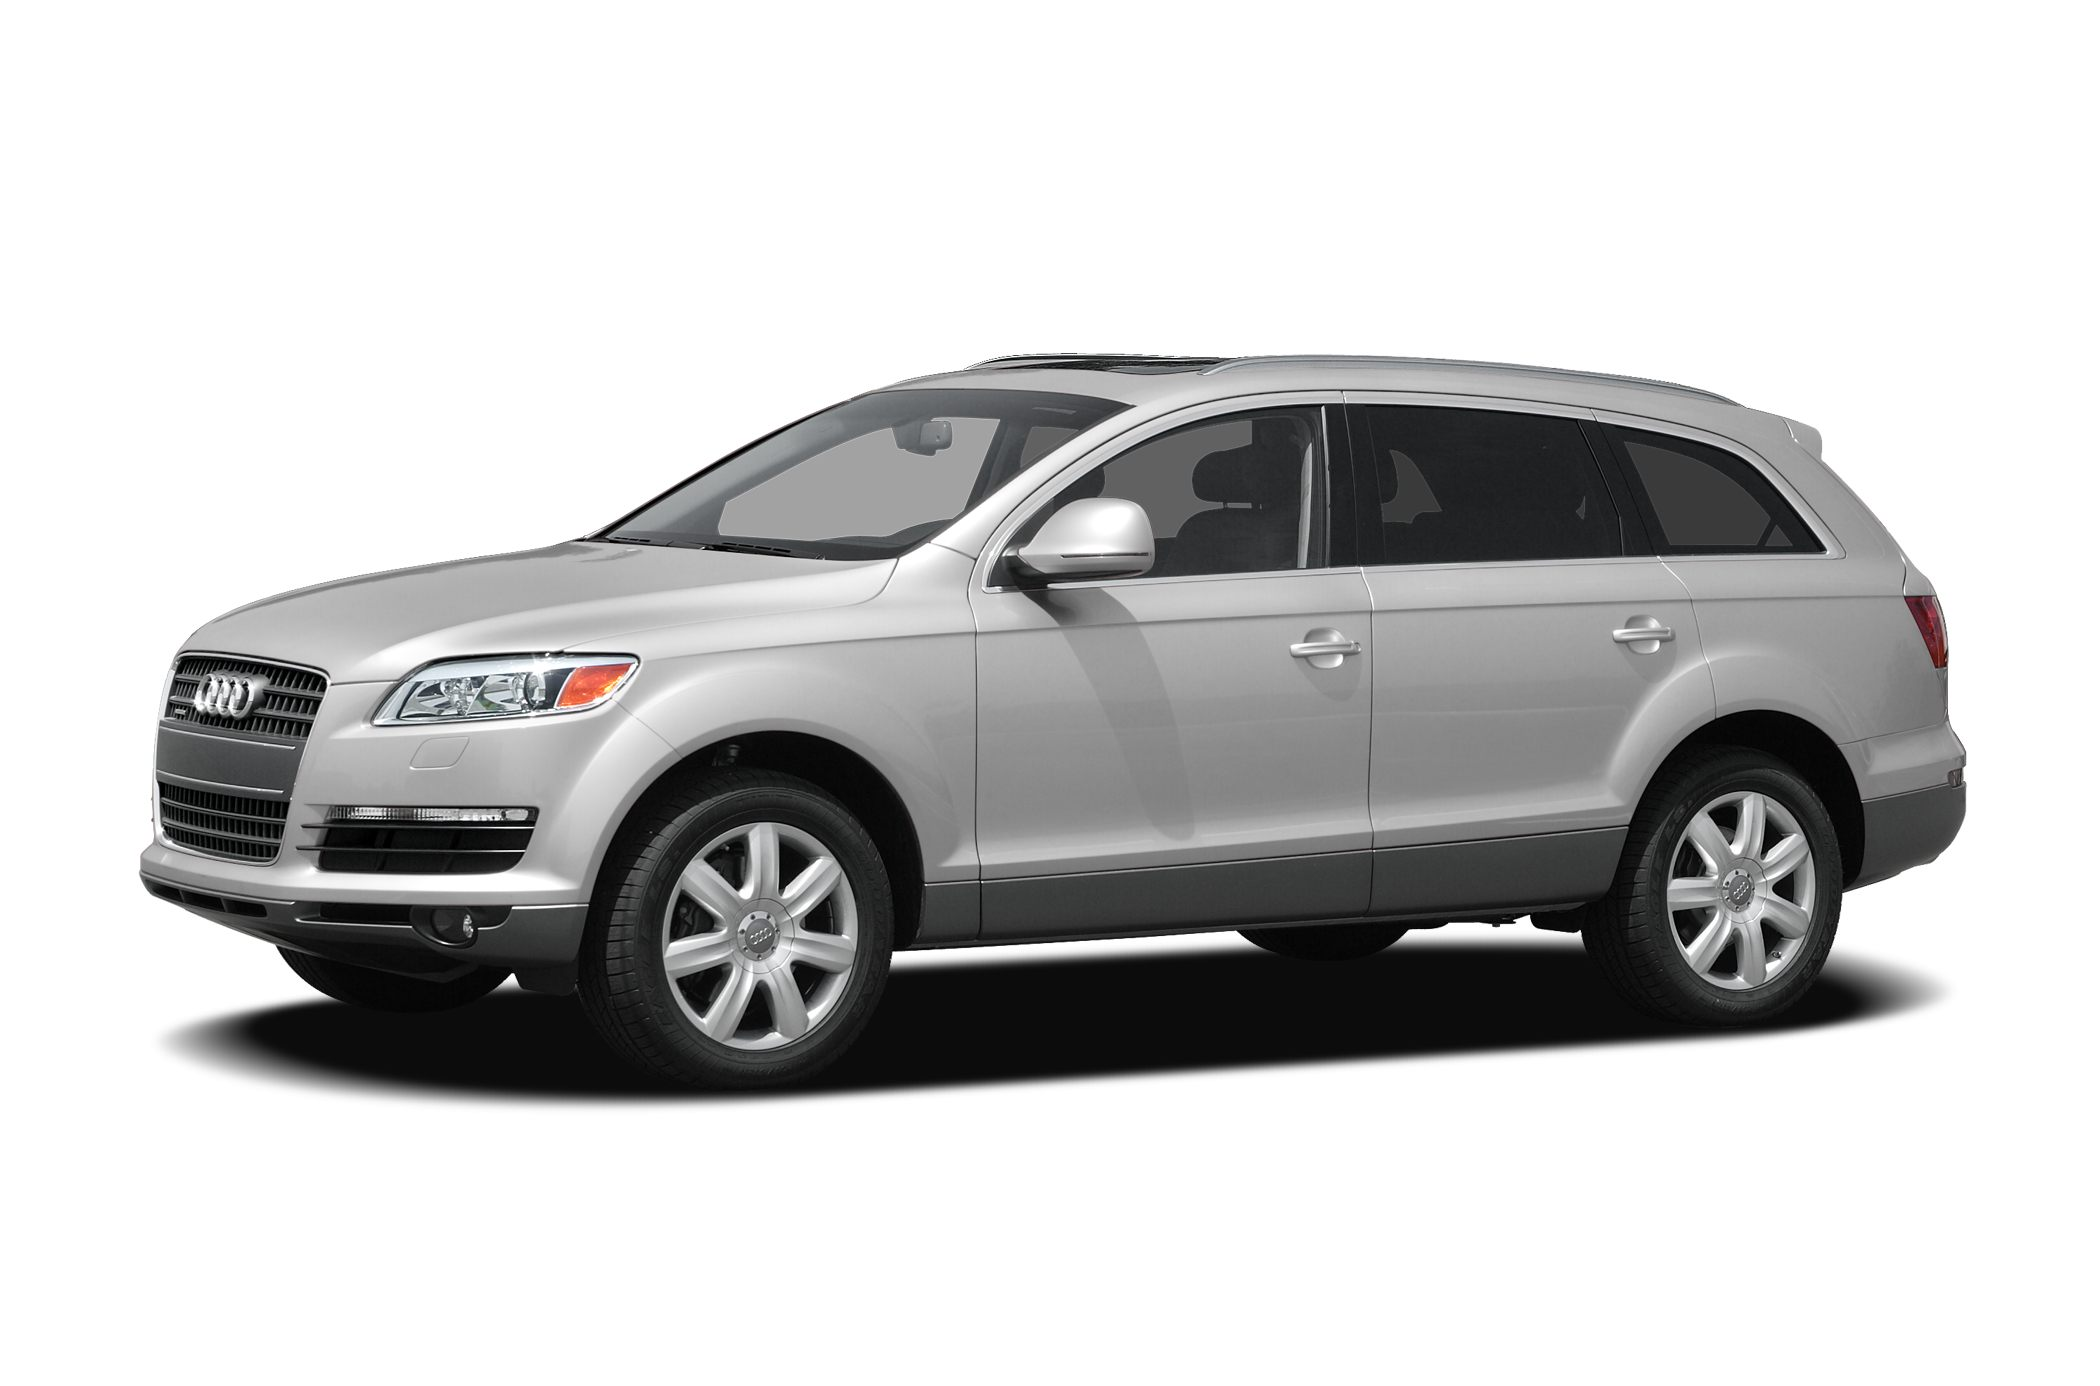 2009 Audi Q7 3.6 SUV for sale in Elmwood Park for $18,995 with 114,041 miles.